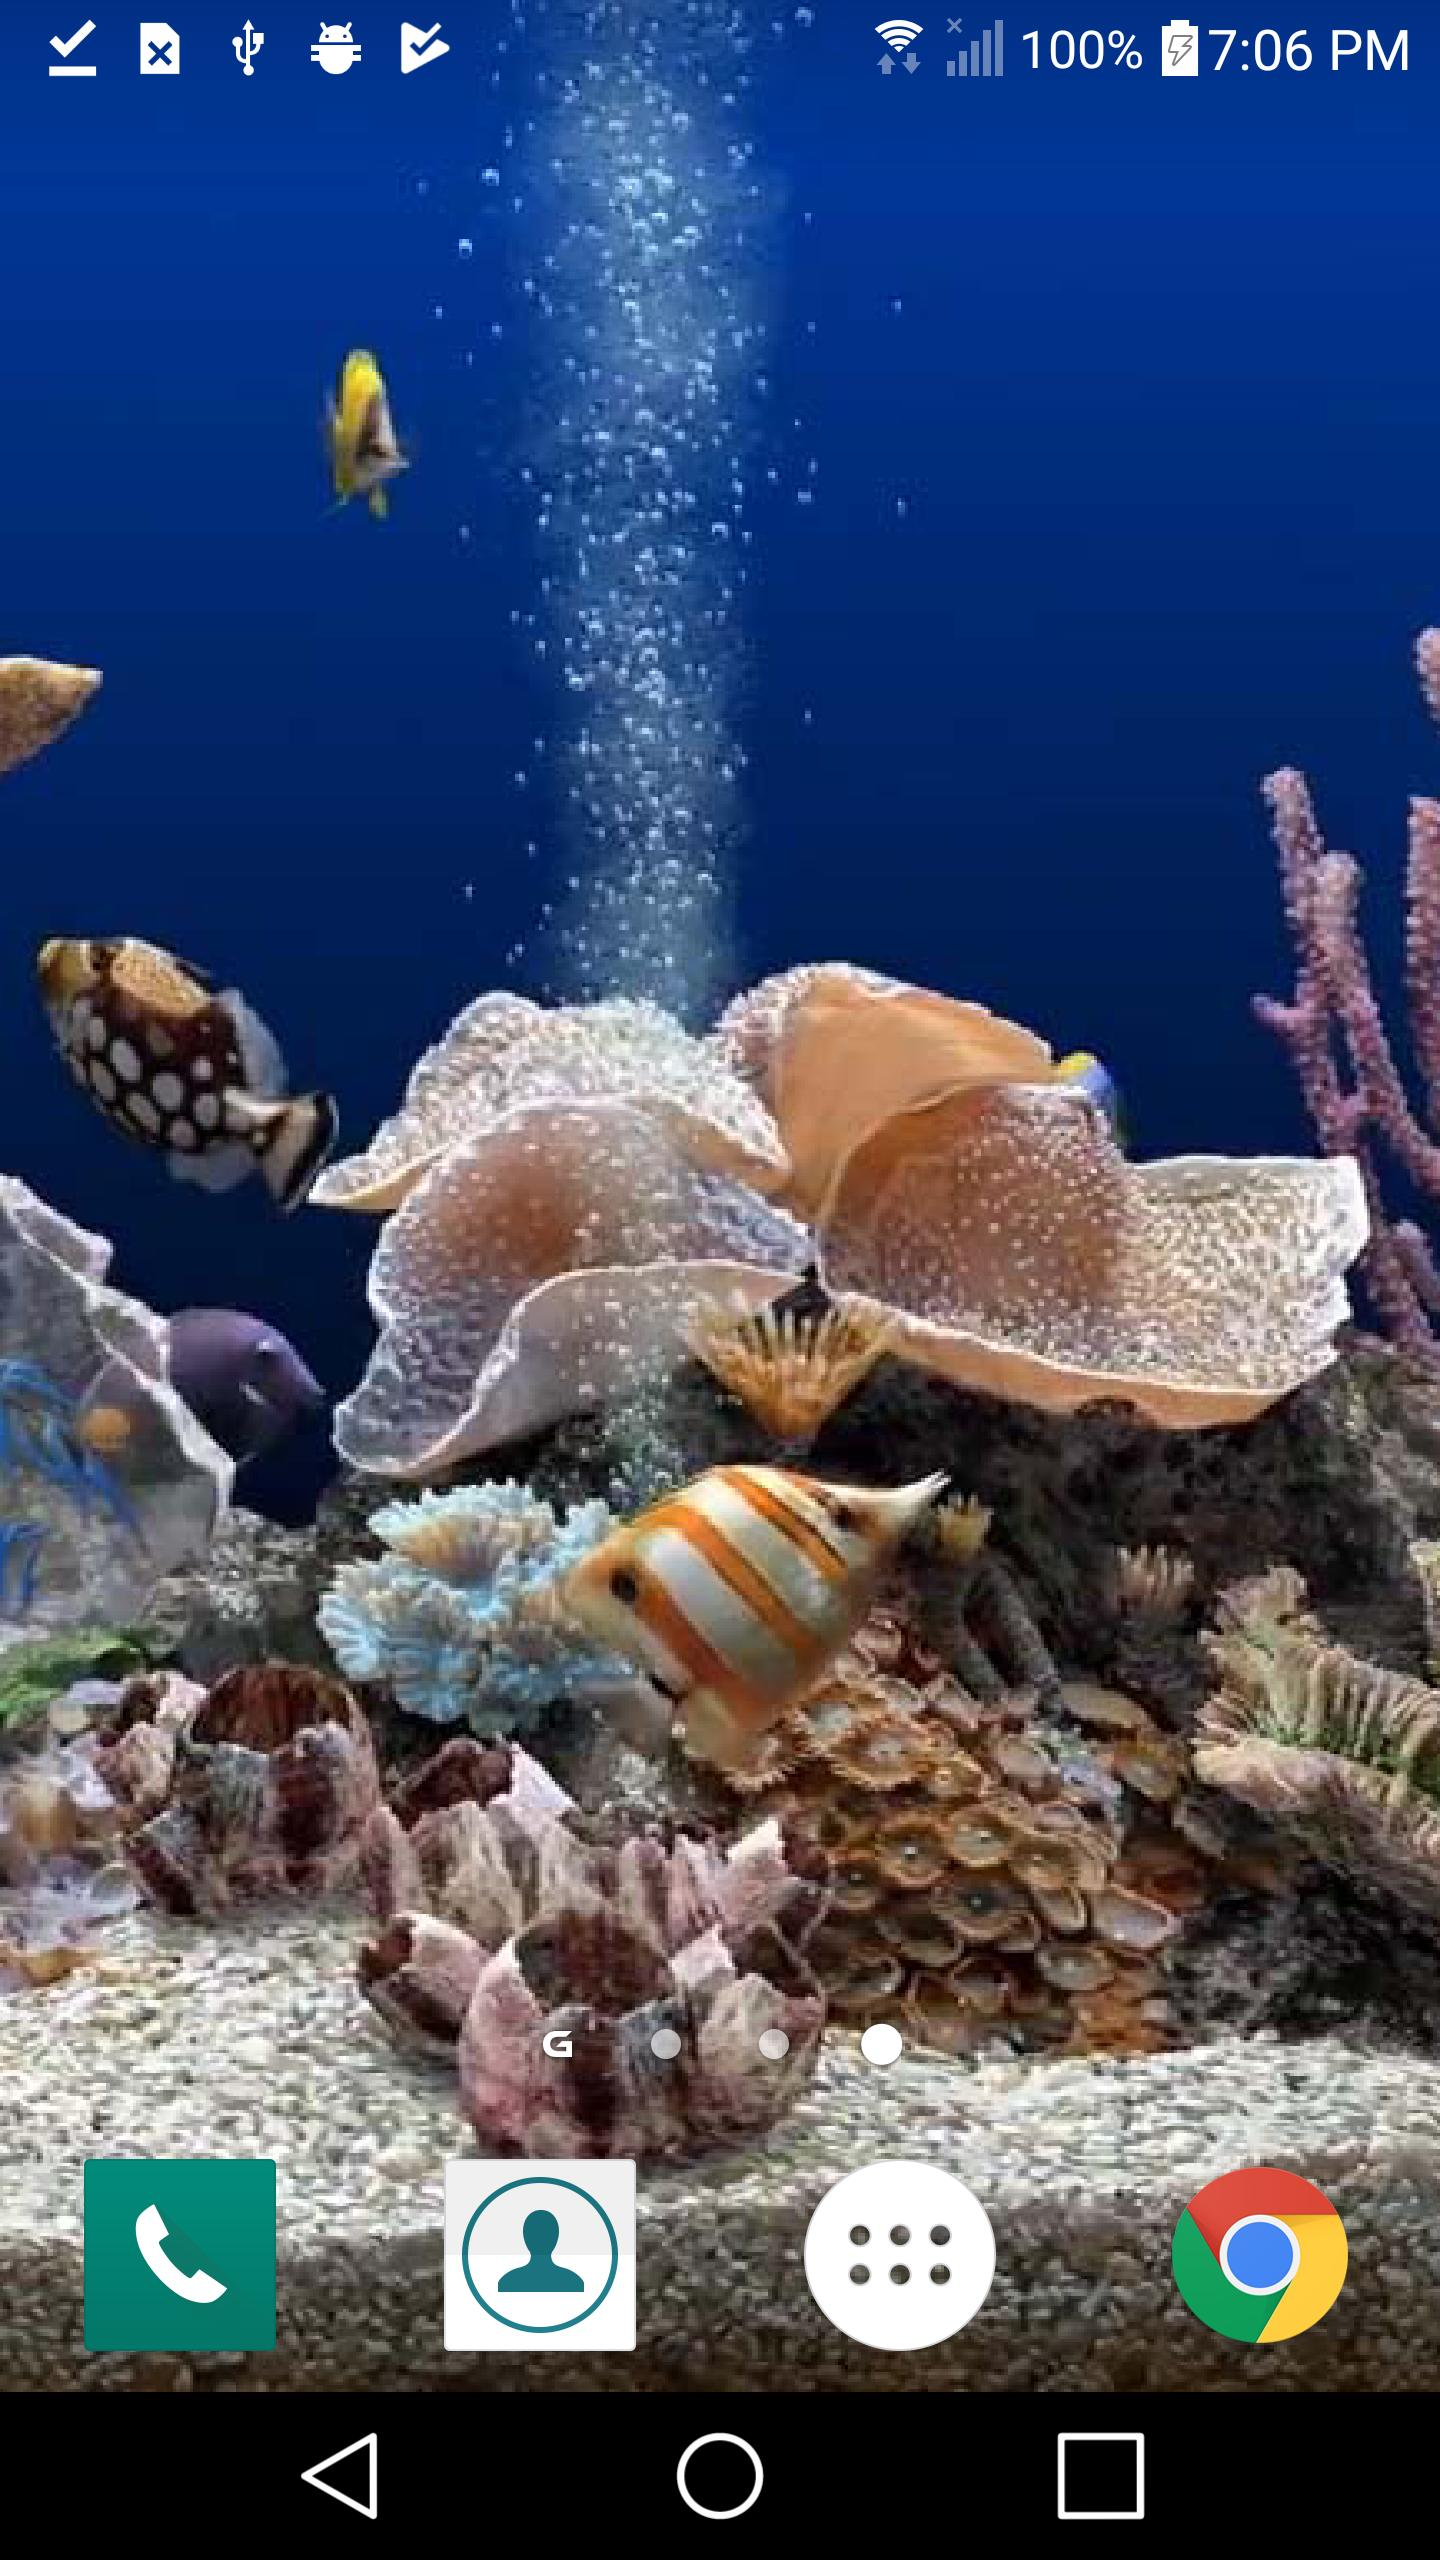 Aquarium Live Wallpaper Hd 3d For Samsung Galaxy For